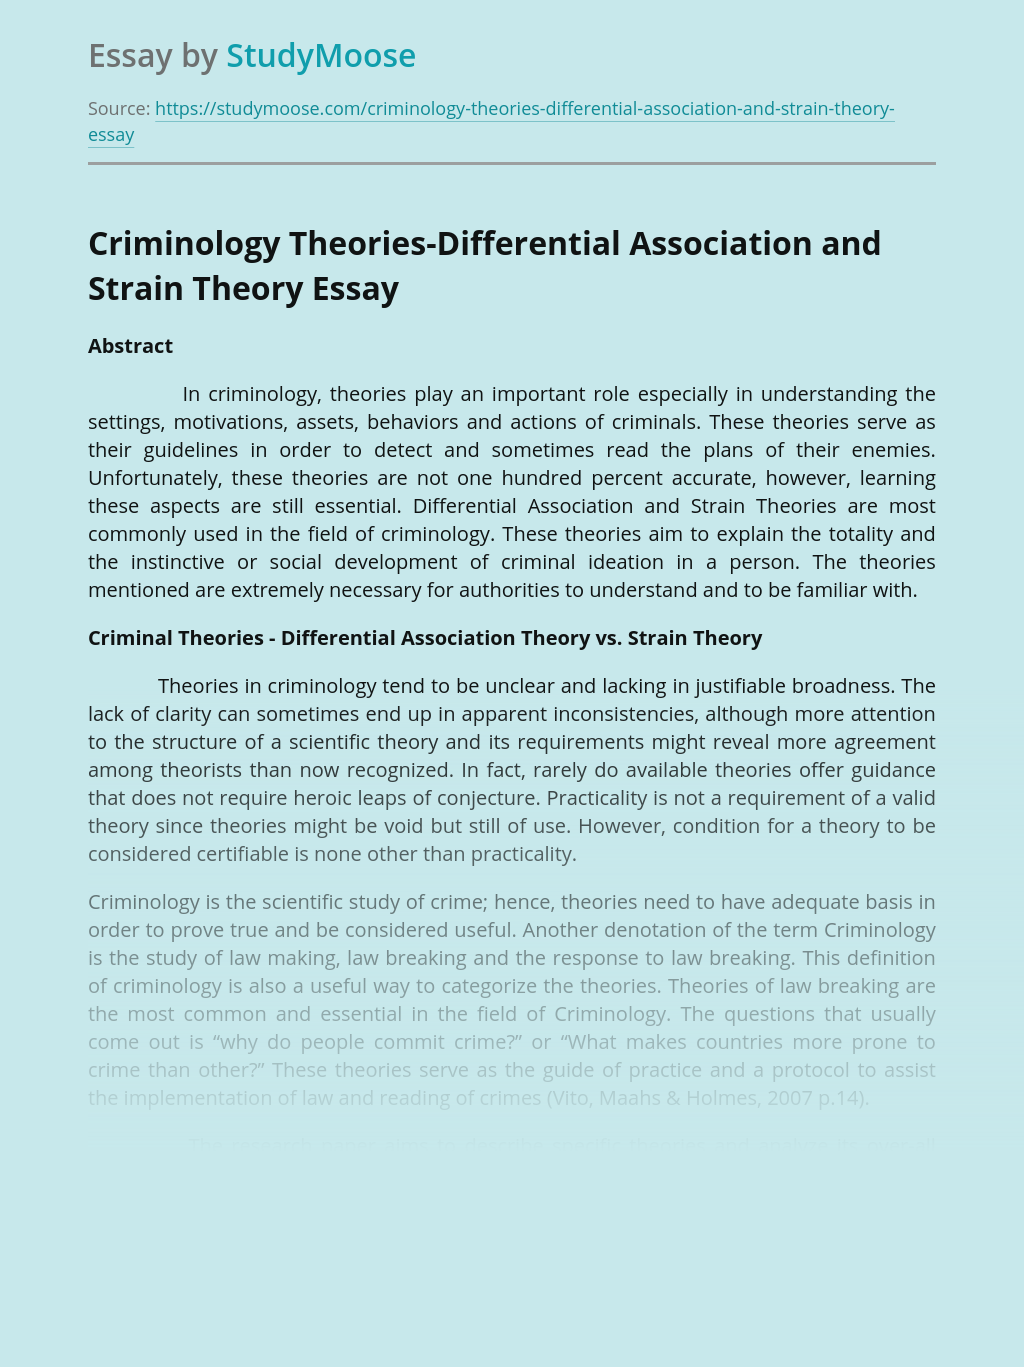 Criminology Theories-Differential Association and Strain Theory